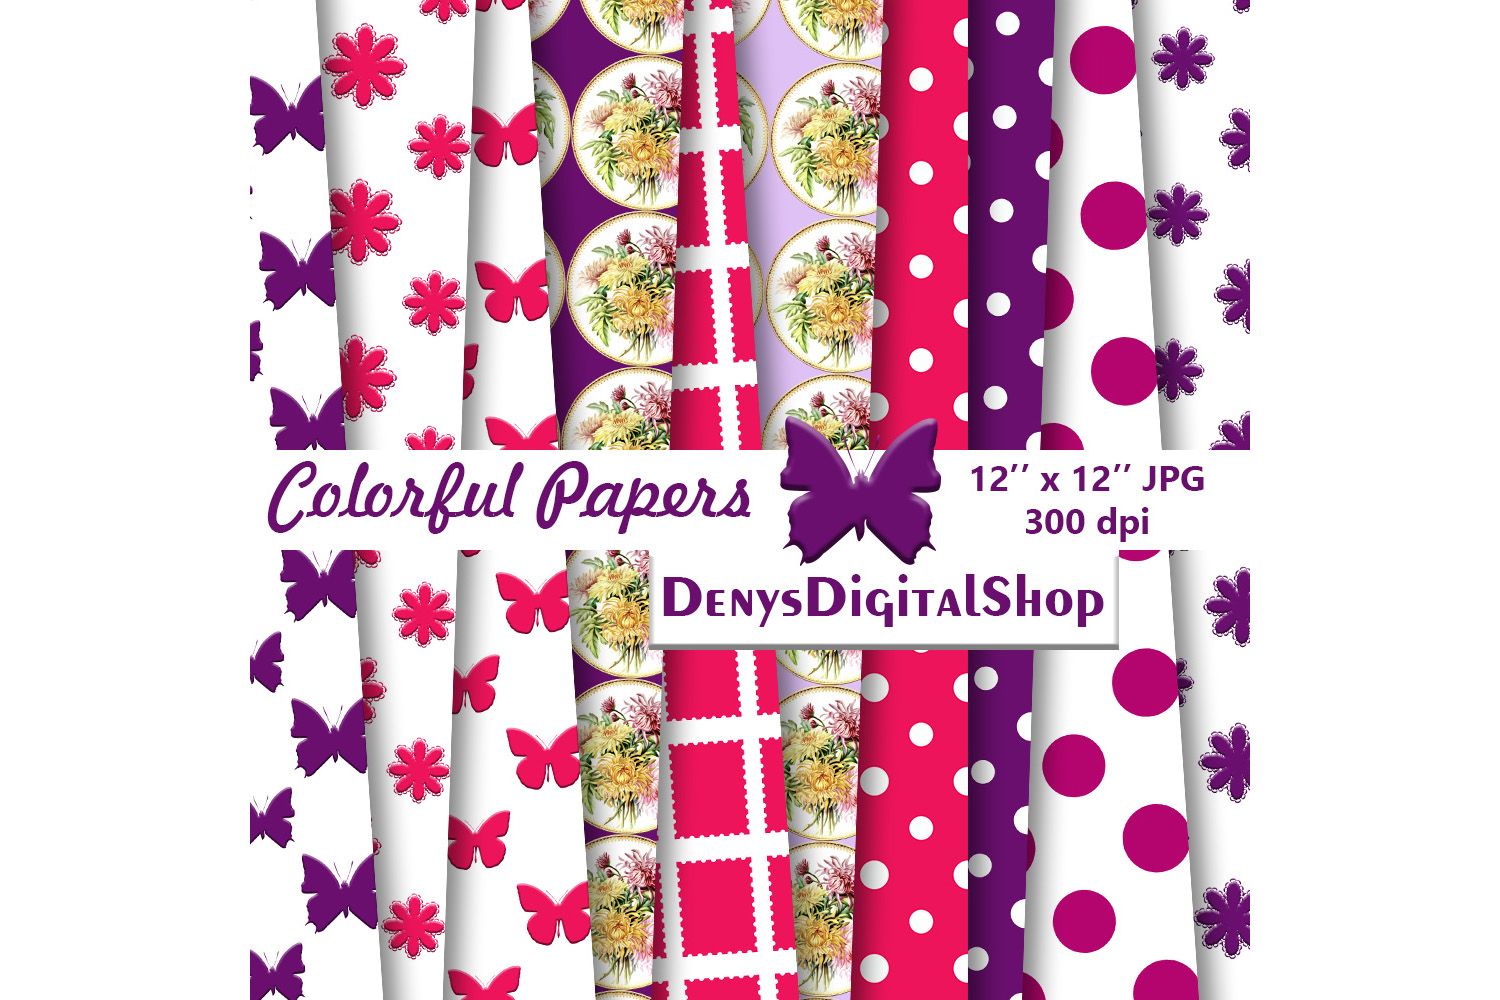 Colorful Patterned, Colorful Butterfly, Colorful Fowers,SALE example image 2